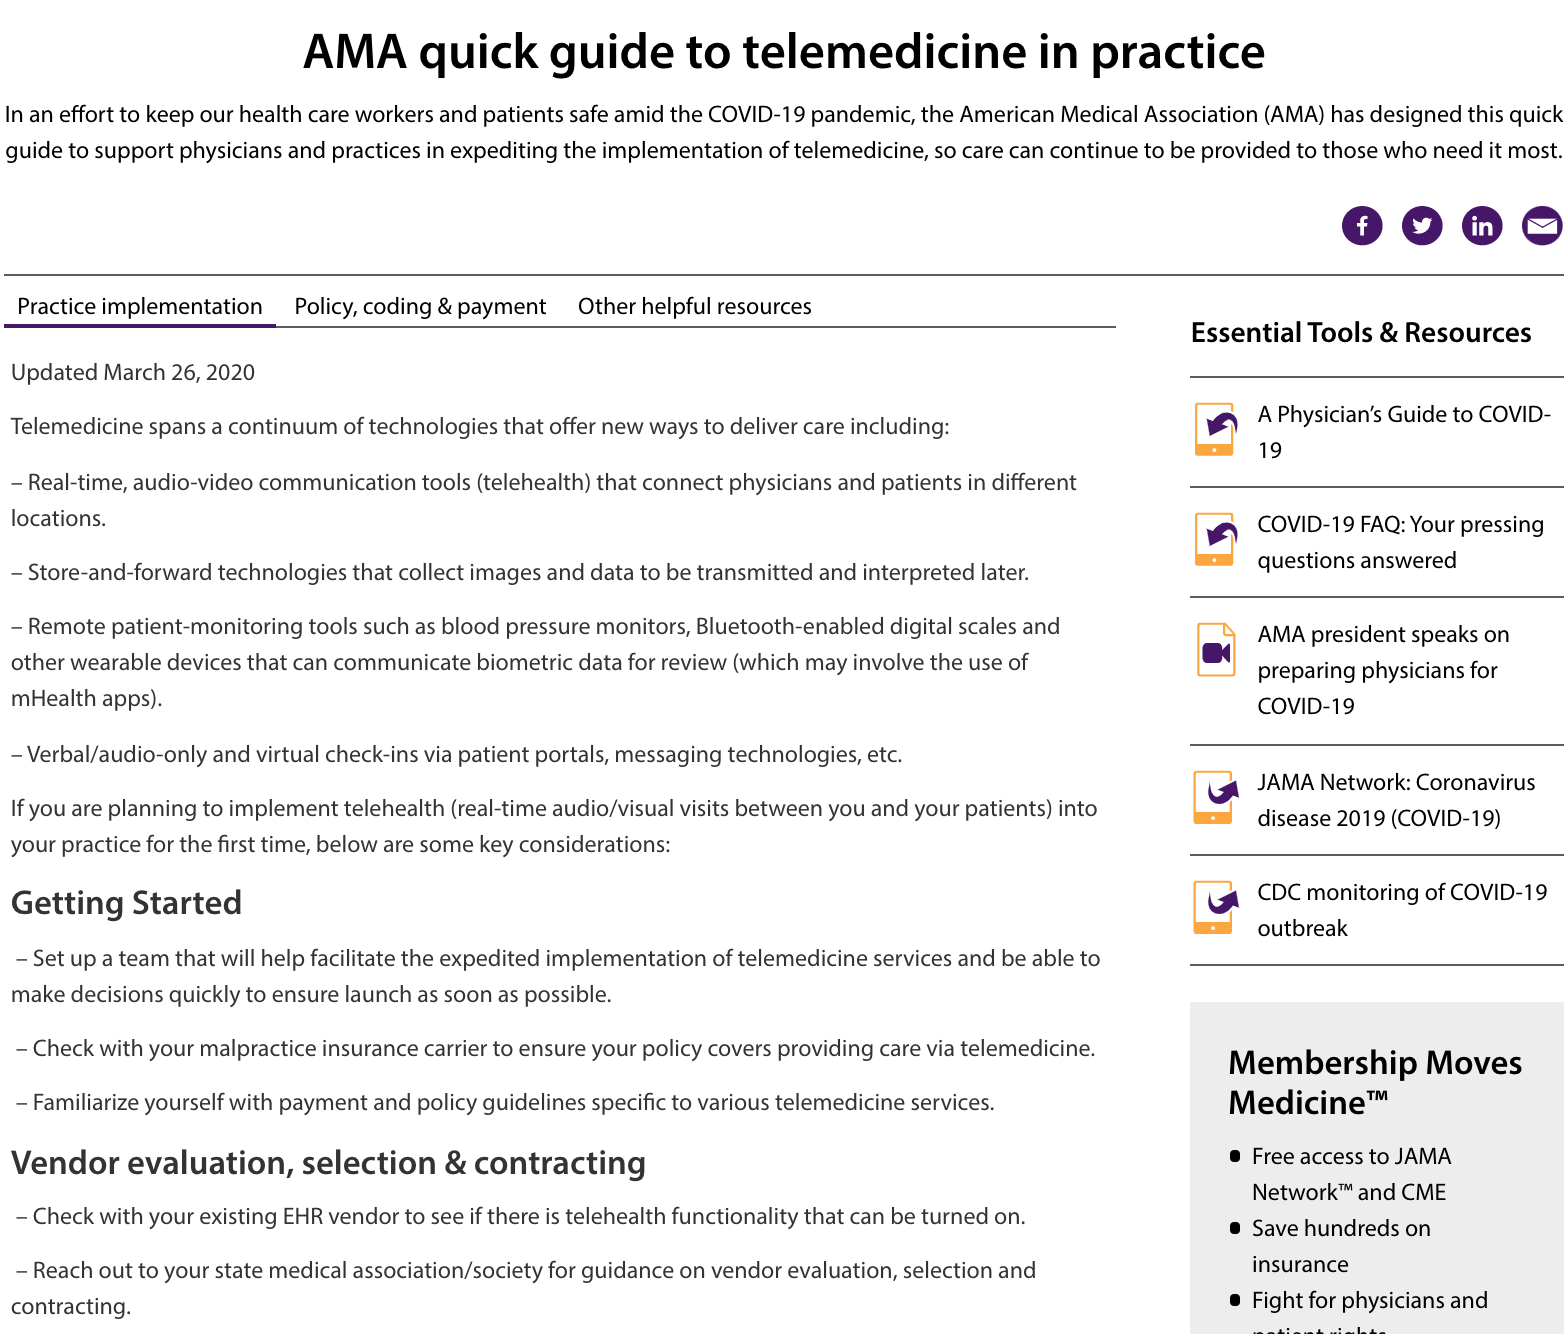 AMA-telemedicine-quick-guide-cover